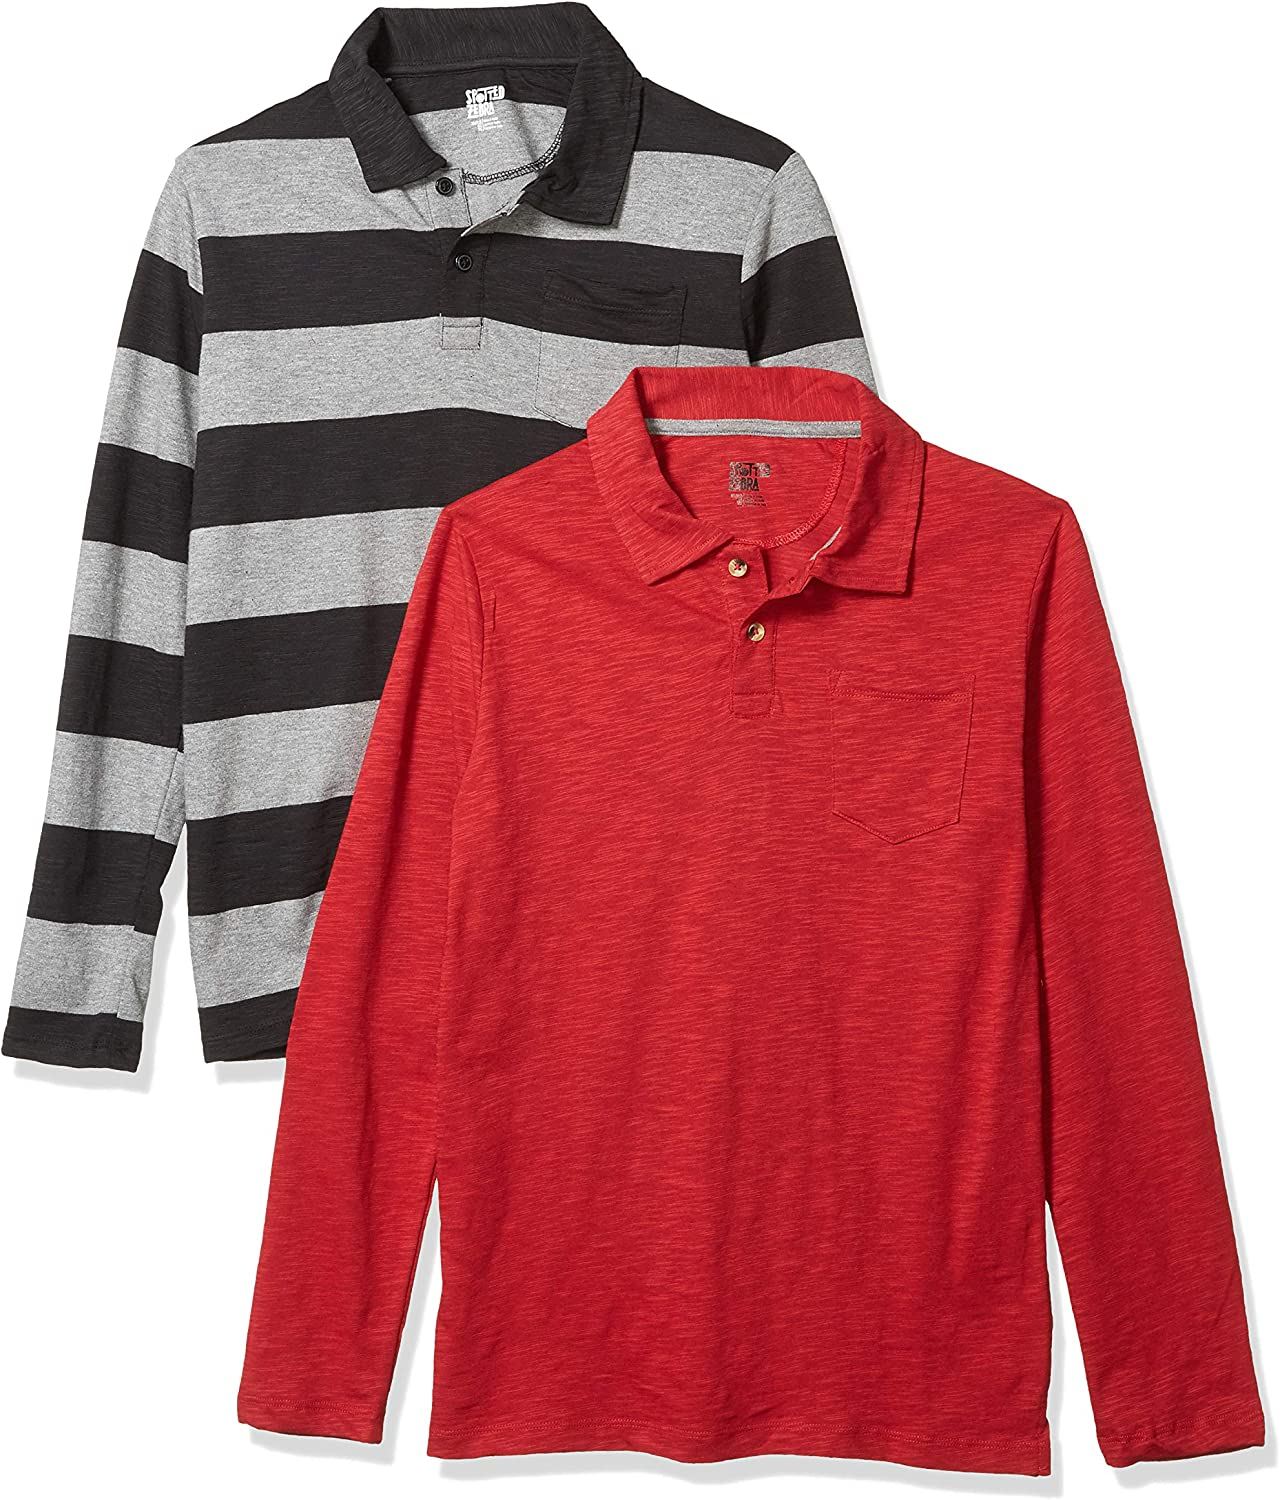 Spotted Zebra Boys Toddler /& Kids 2-Pack Long-Sleeve Polo Shirts